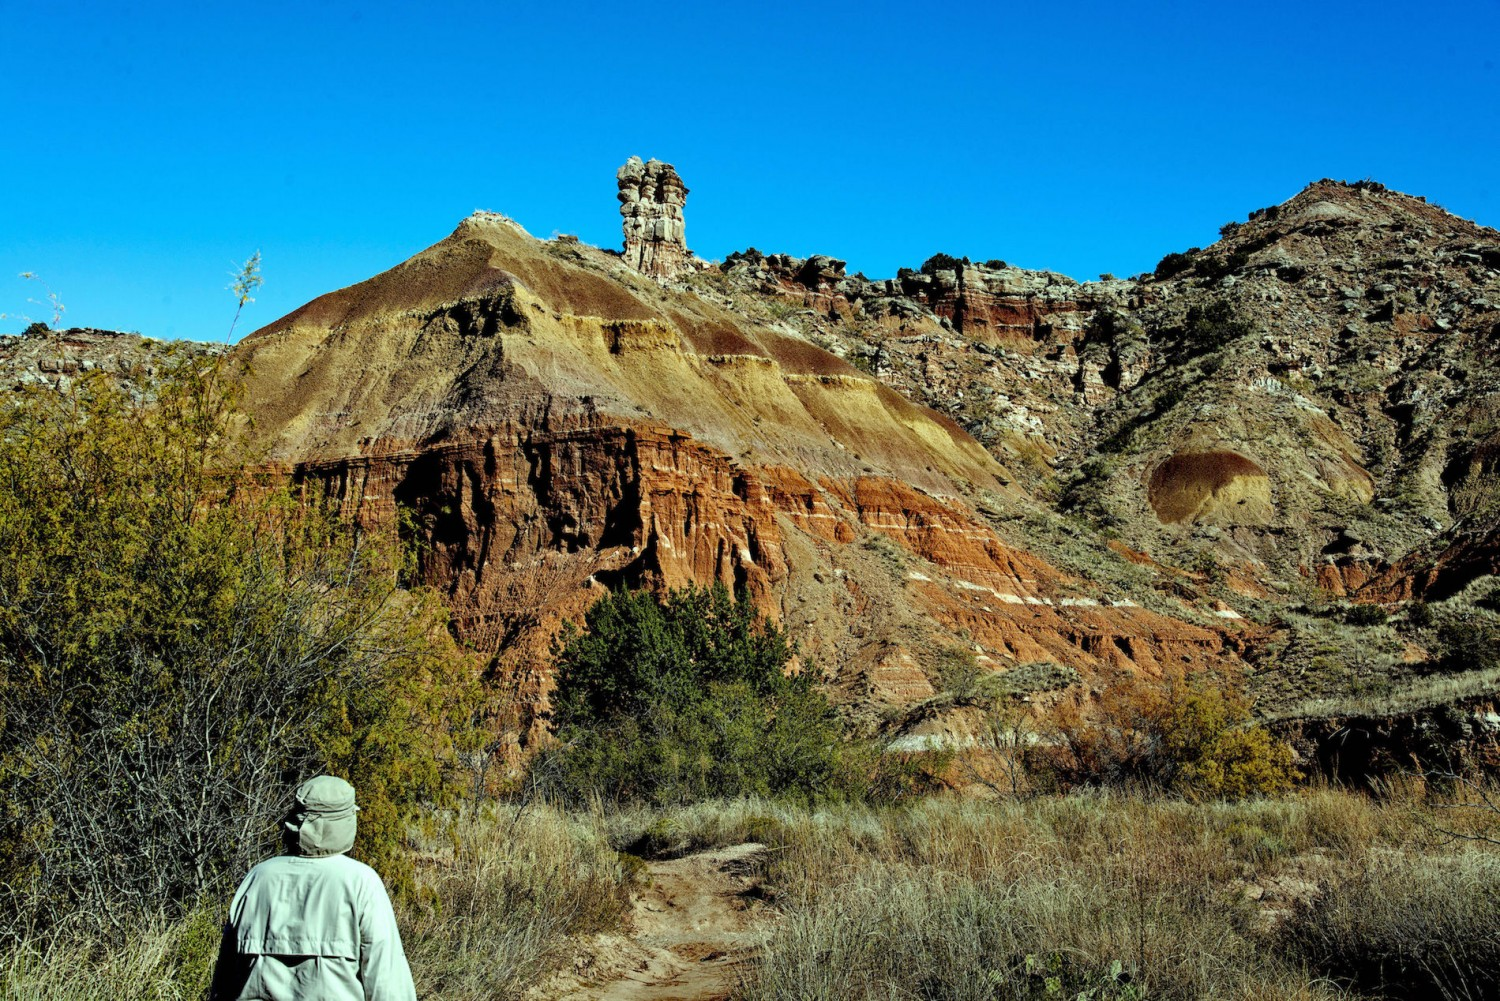 landscape-rock-wilderness-walking-mountain-trail-473333-pxhere.com